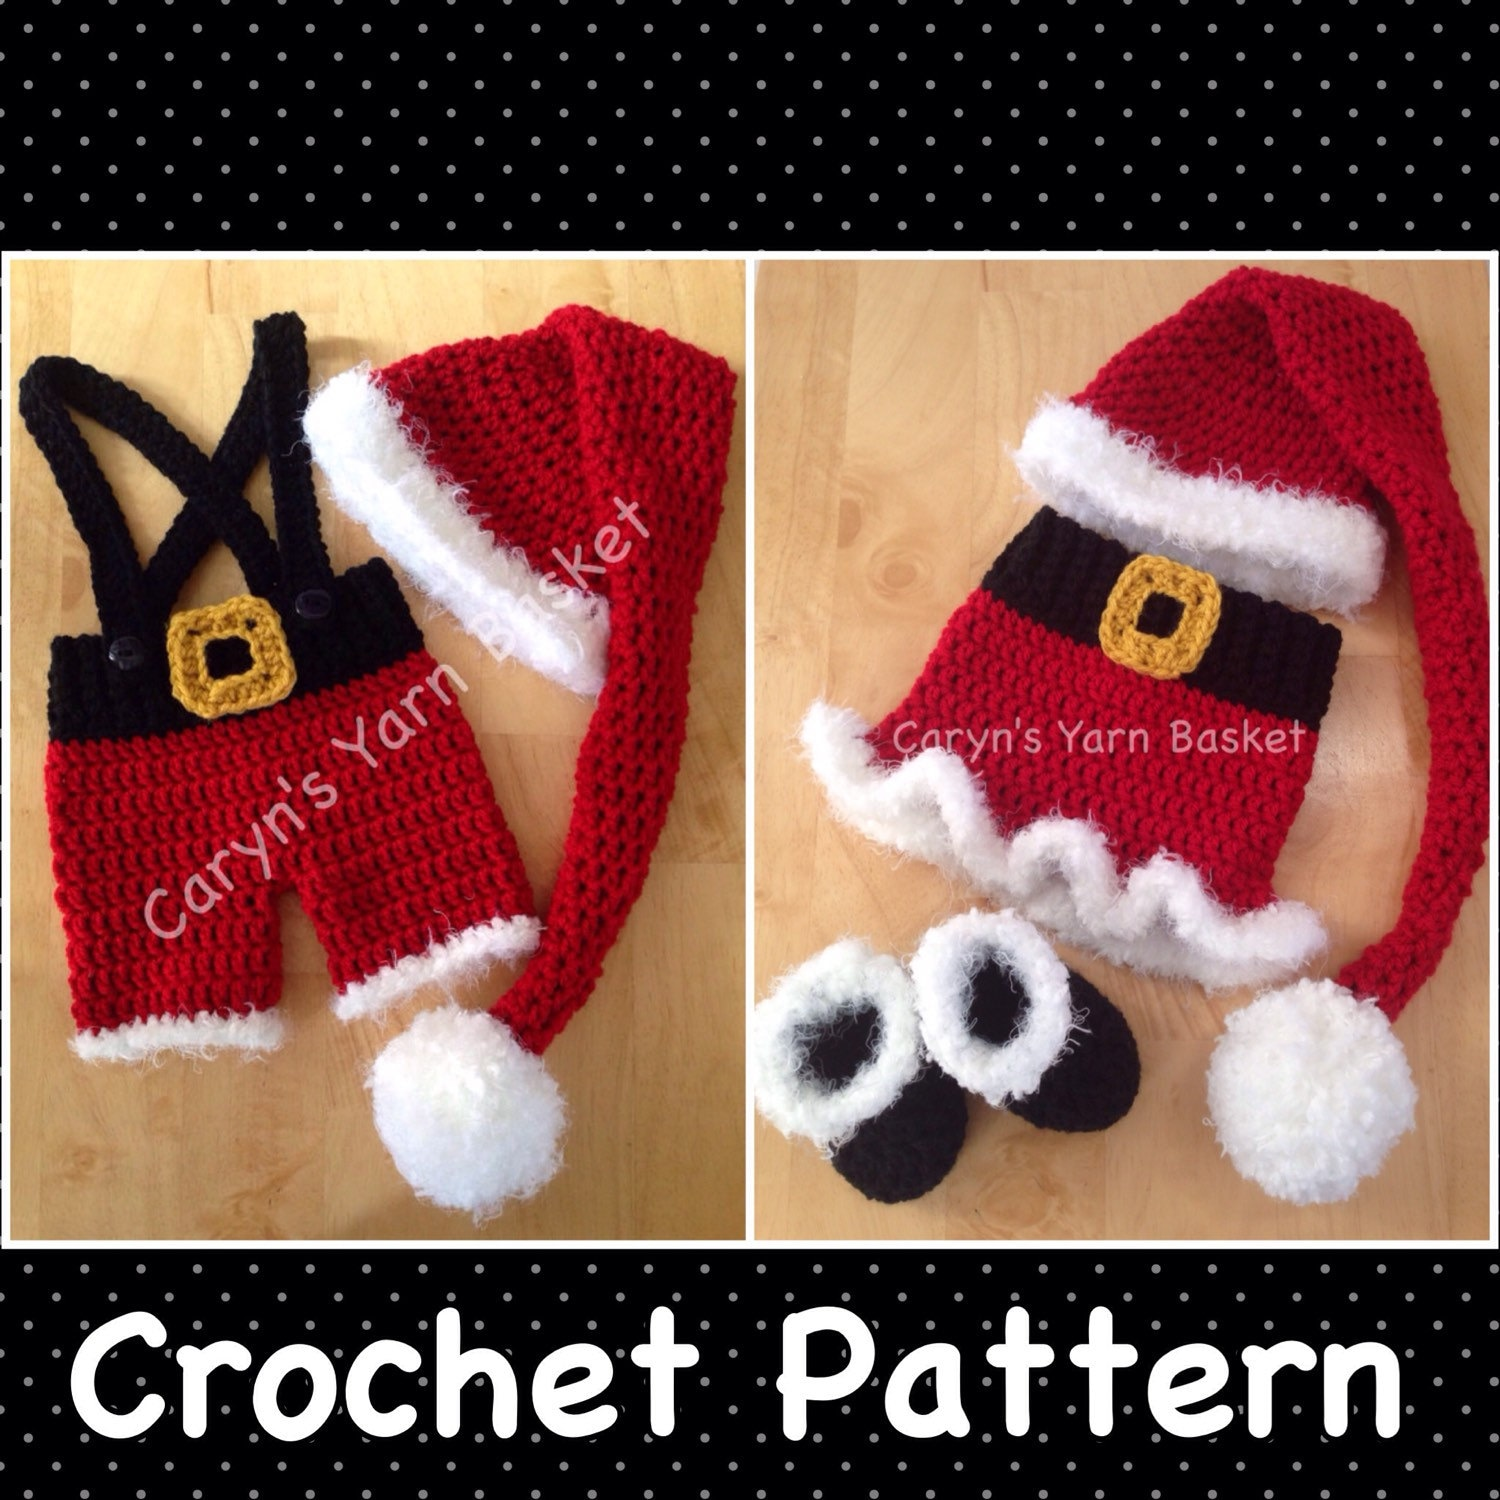 TWO CROCHET PATTERNS 3-6 Month Size Santa\'s Lil Helper